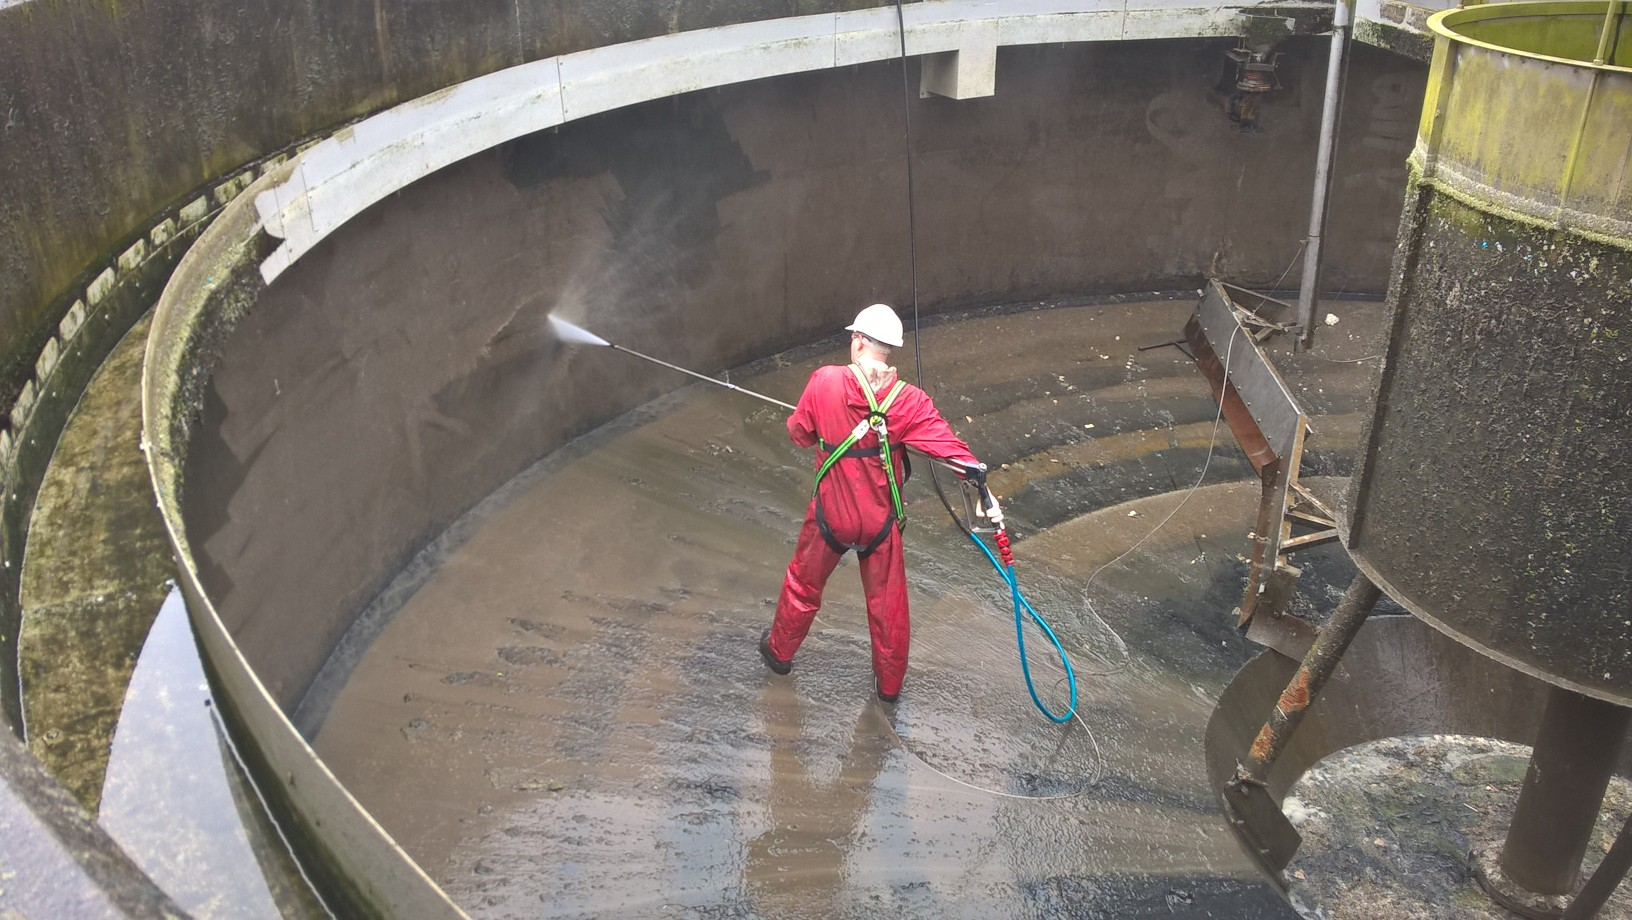 Water Tank Confined Space : Celvac waste removal specialist design and clea news